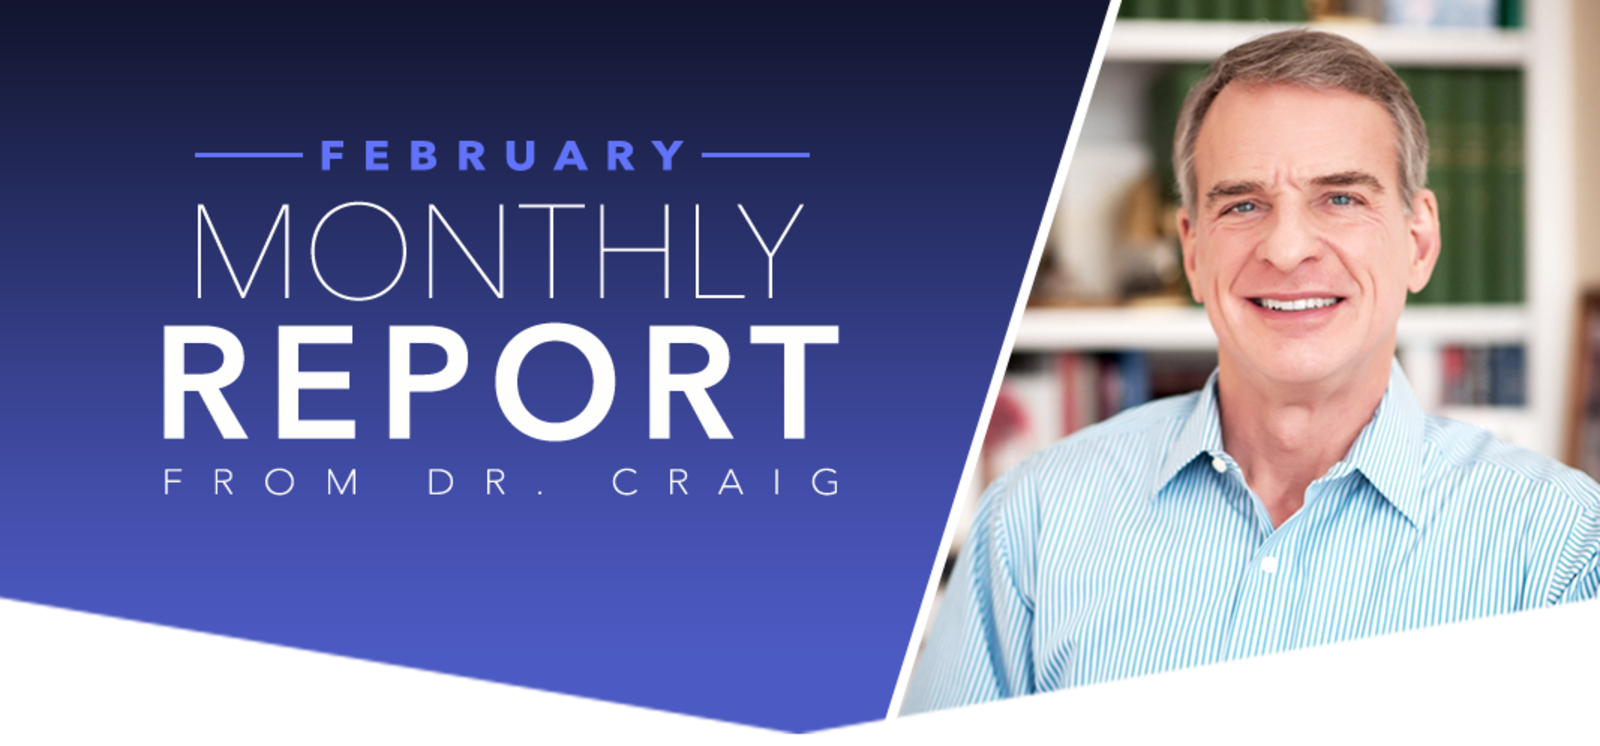 FEBRUARY MONTHLY REPORT FROM DR. CRAIG